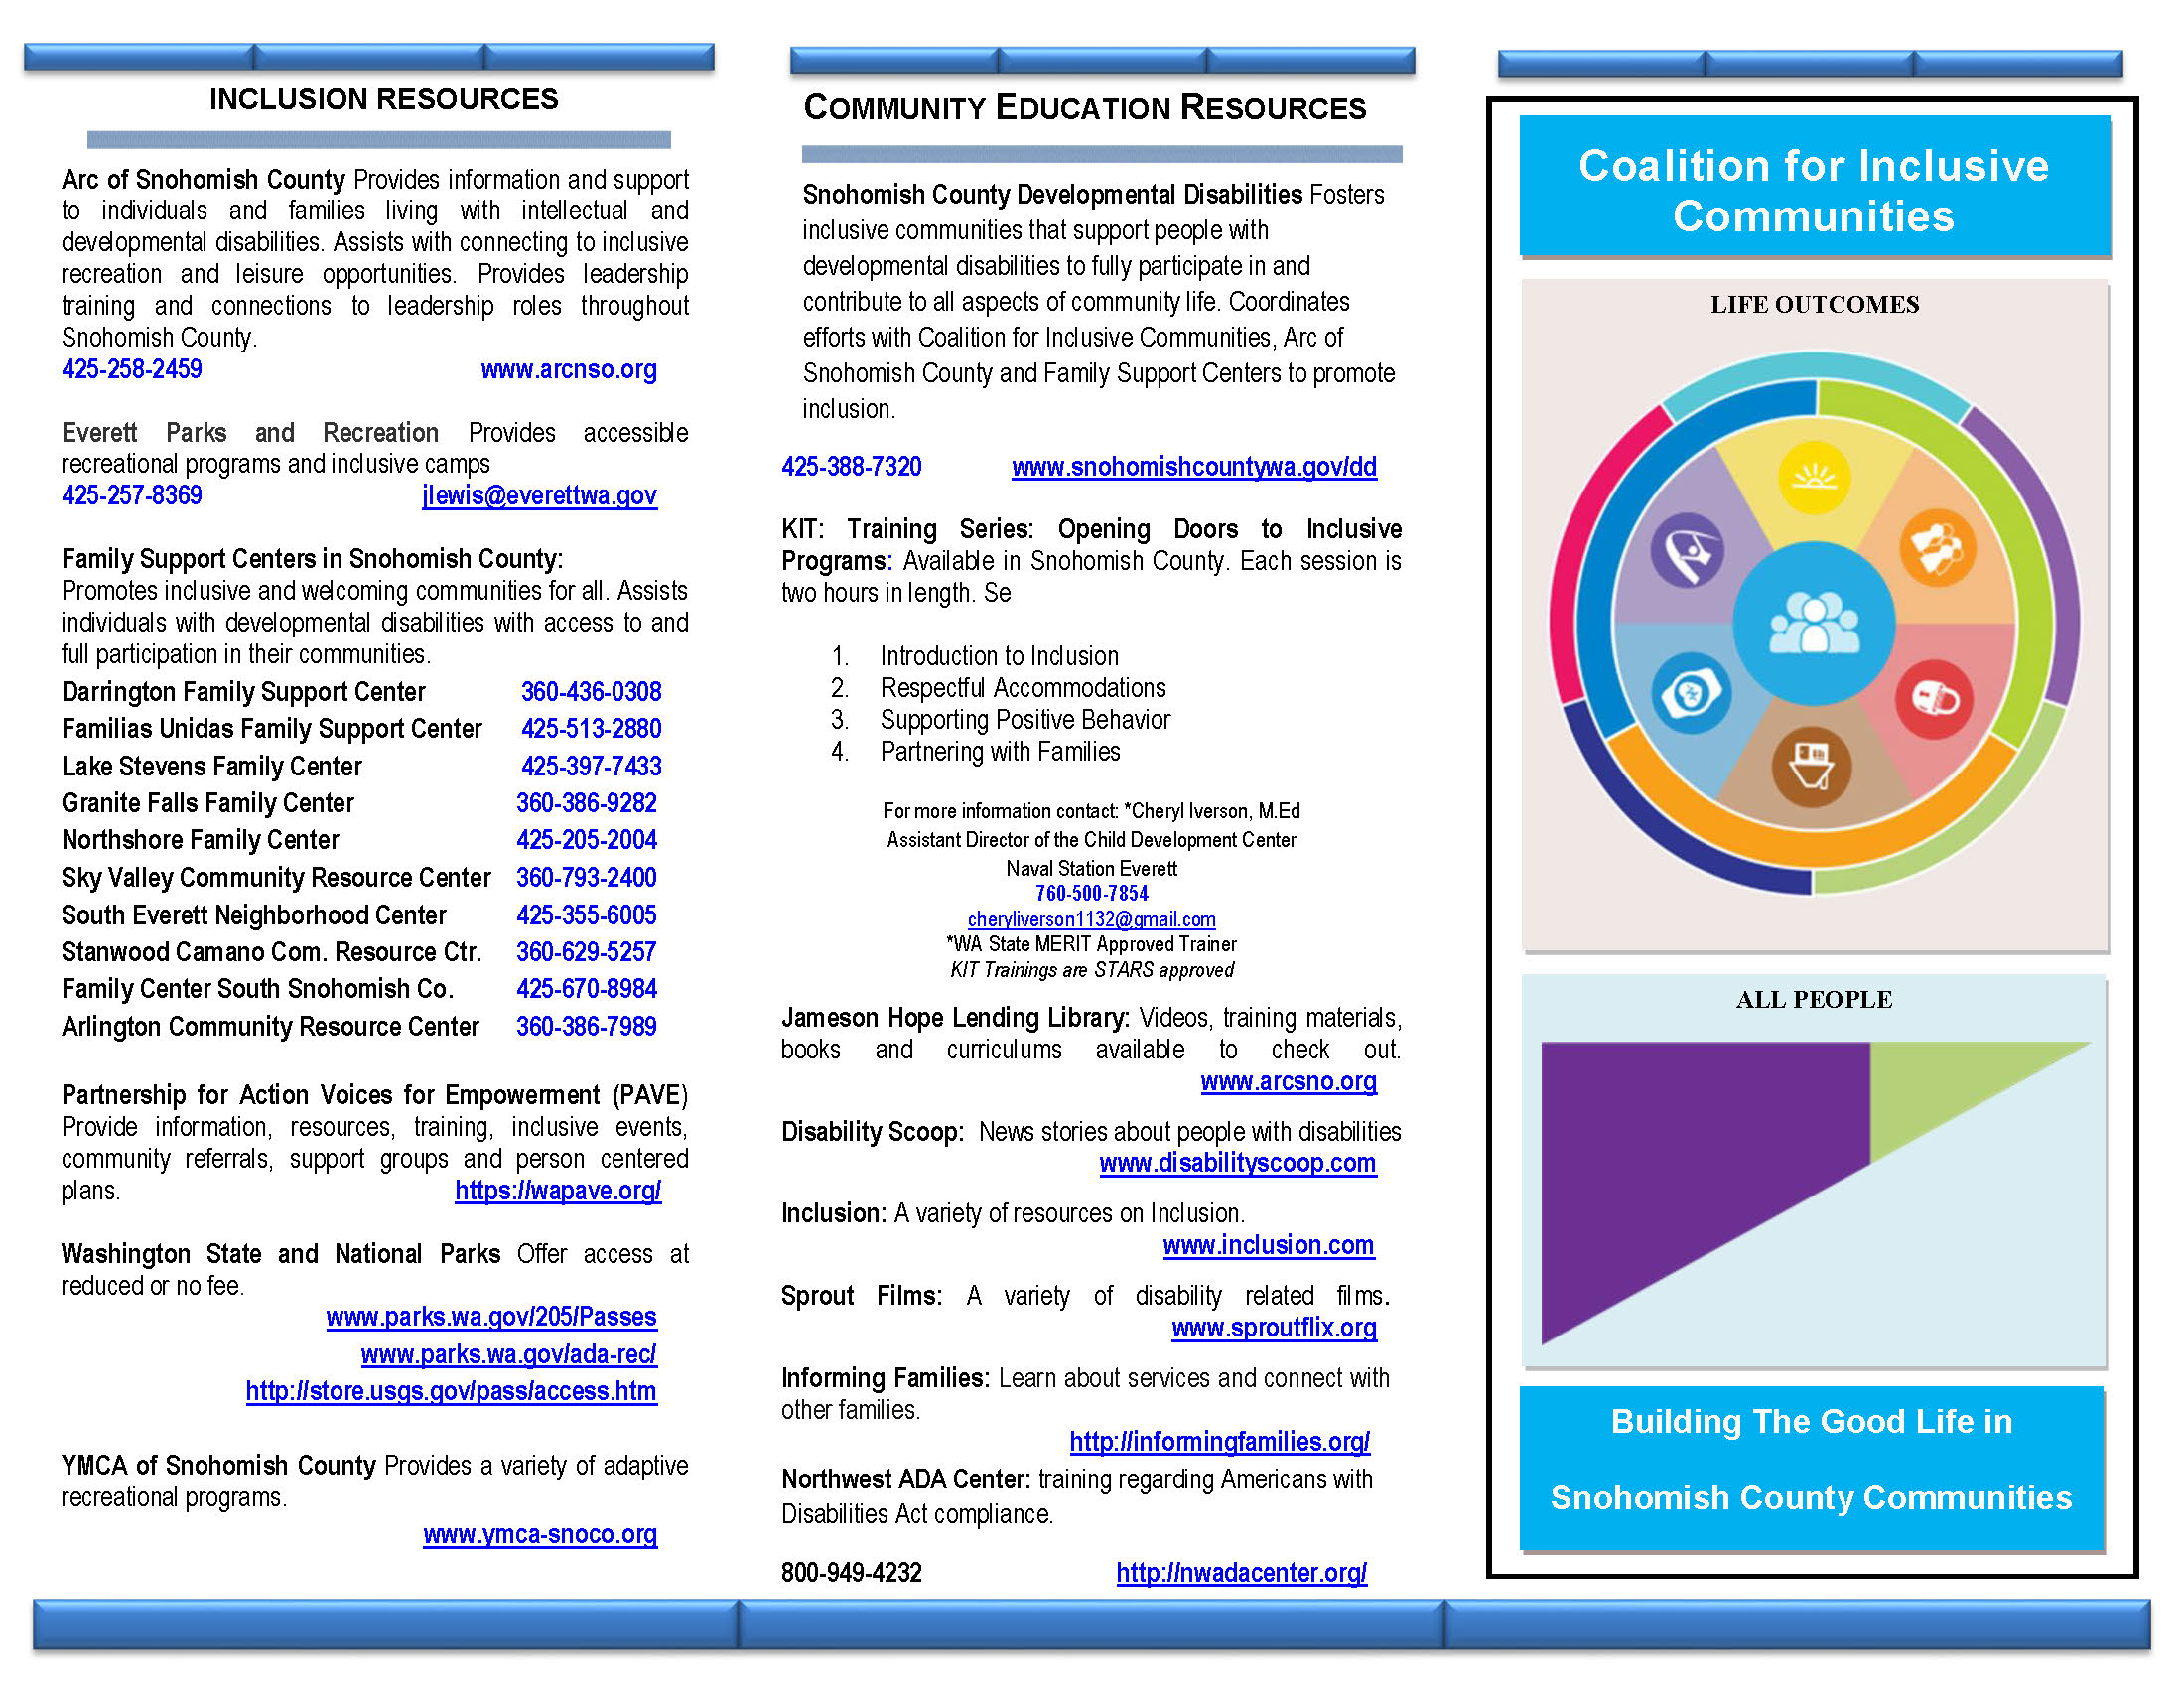 Coalition for Inclusive Communities Brochure